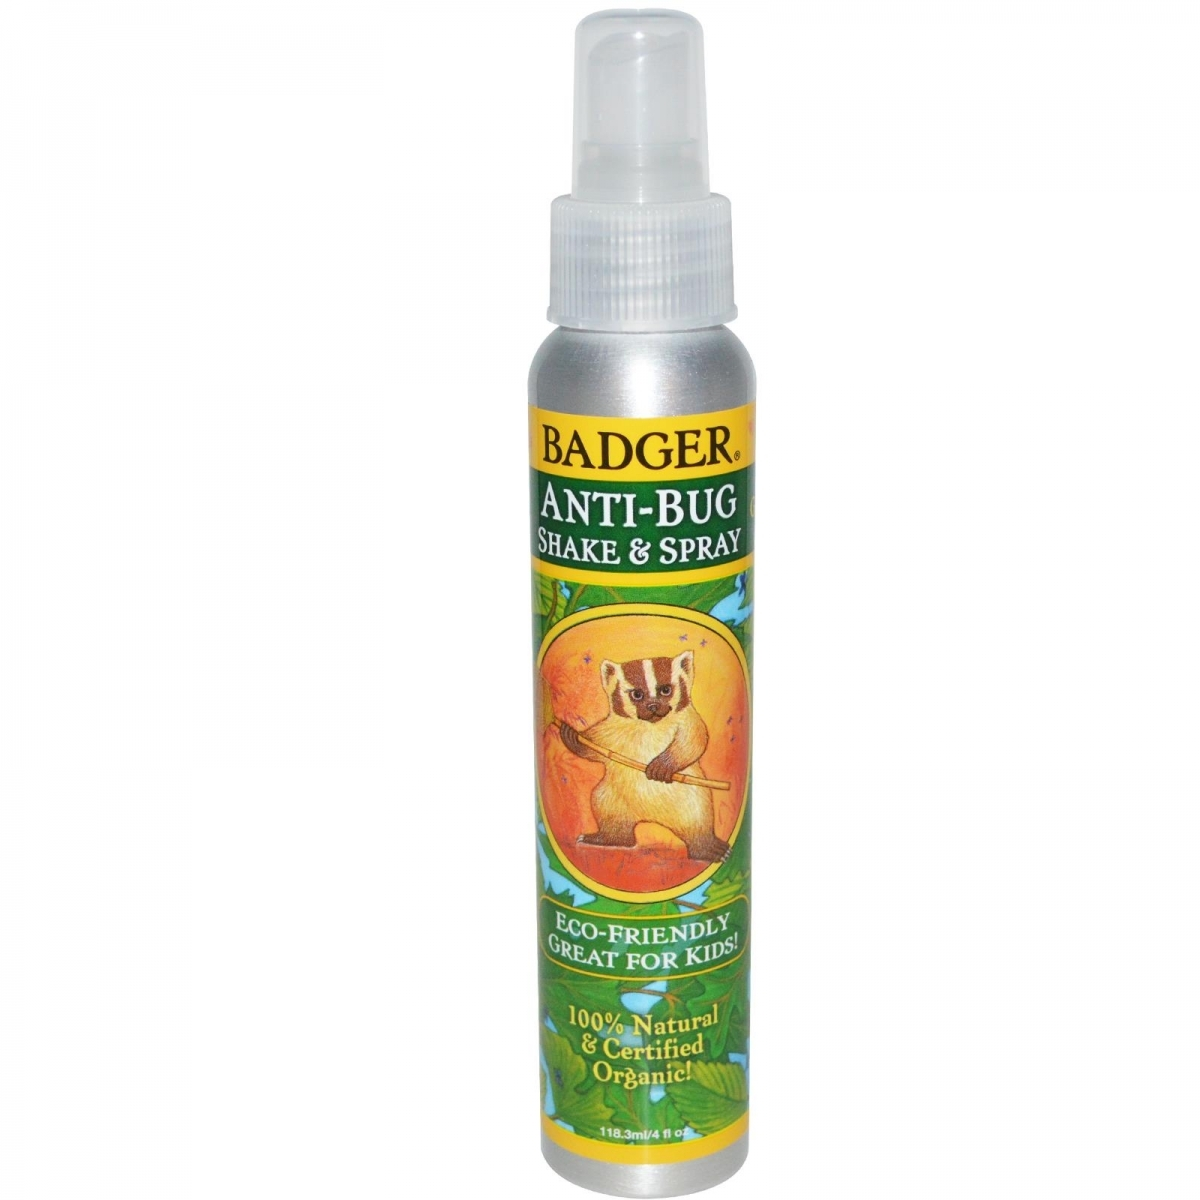 badger anti bug spray review